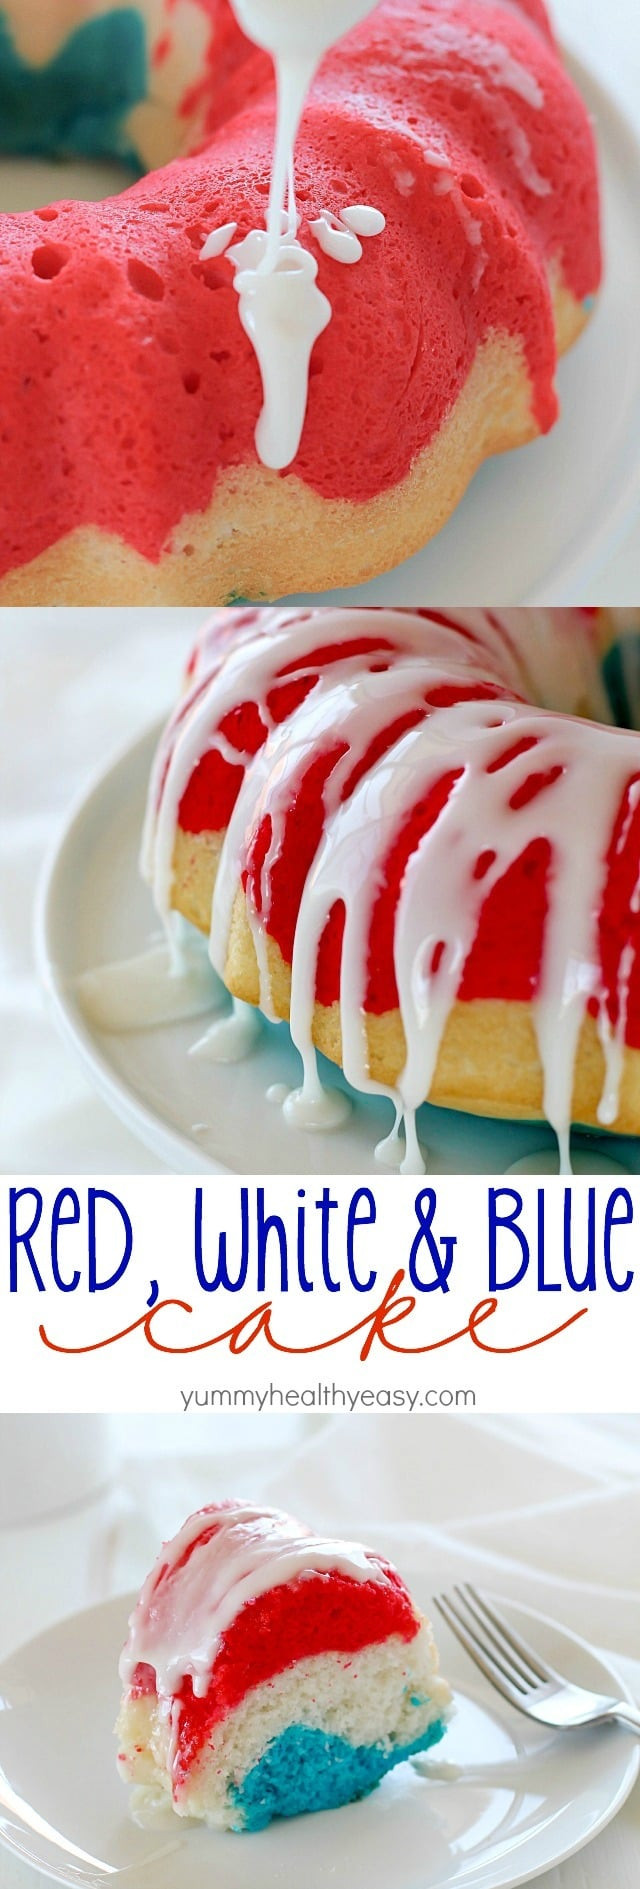 Healthy White Cake Recipe  Easy Red White and Blue Cake Recipe Yummy Healthy Easy